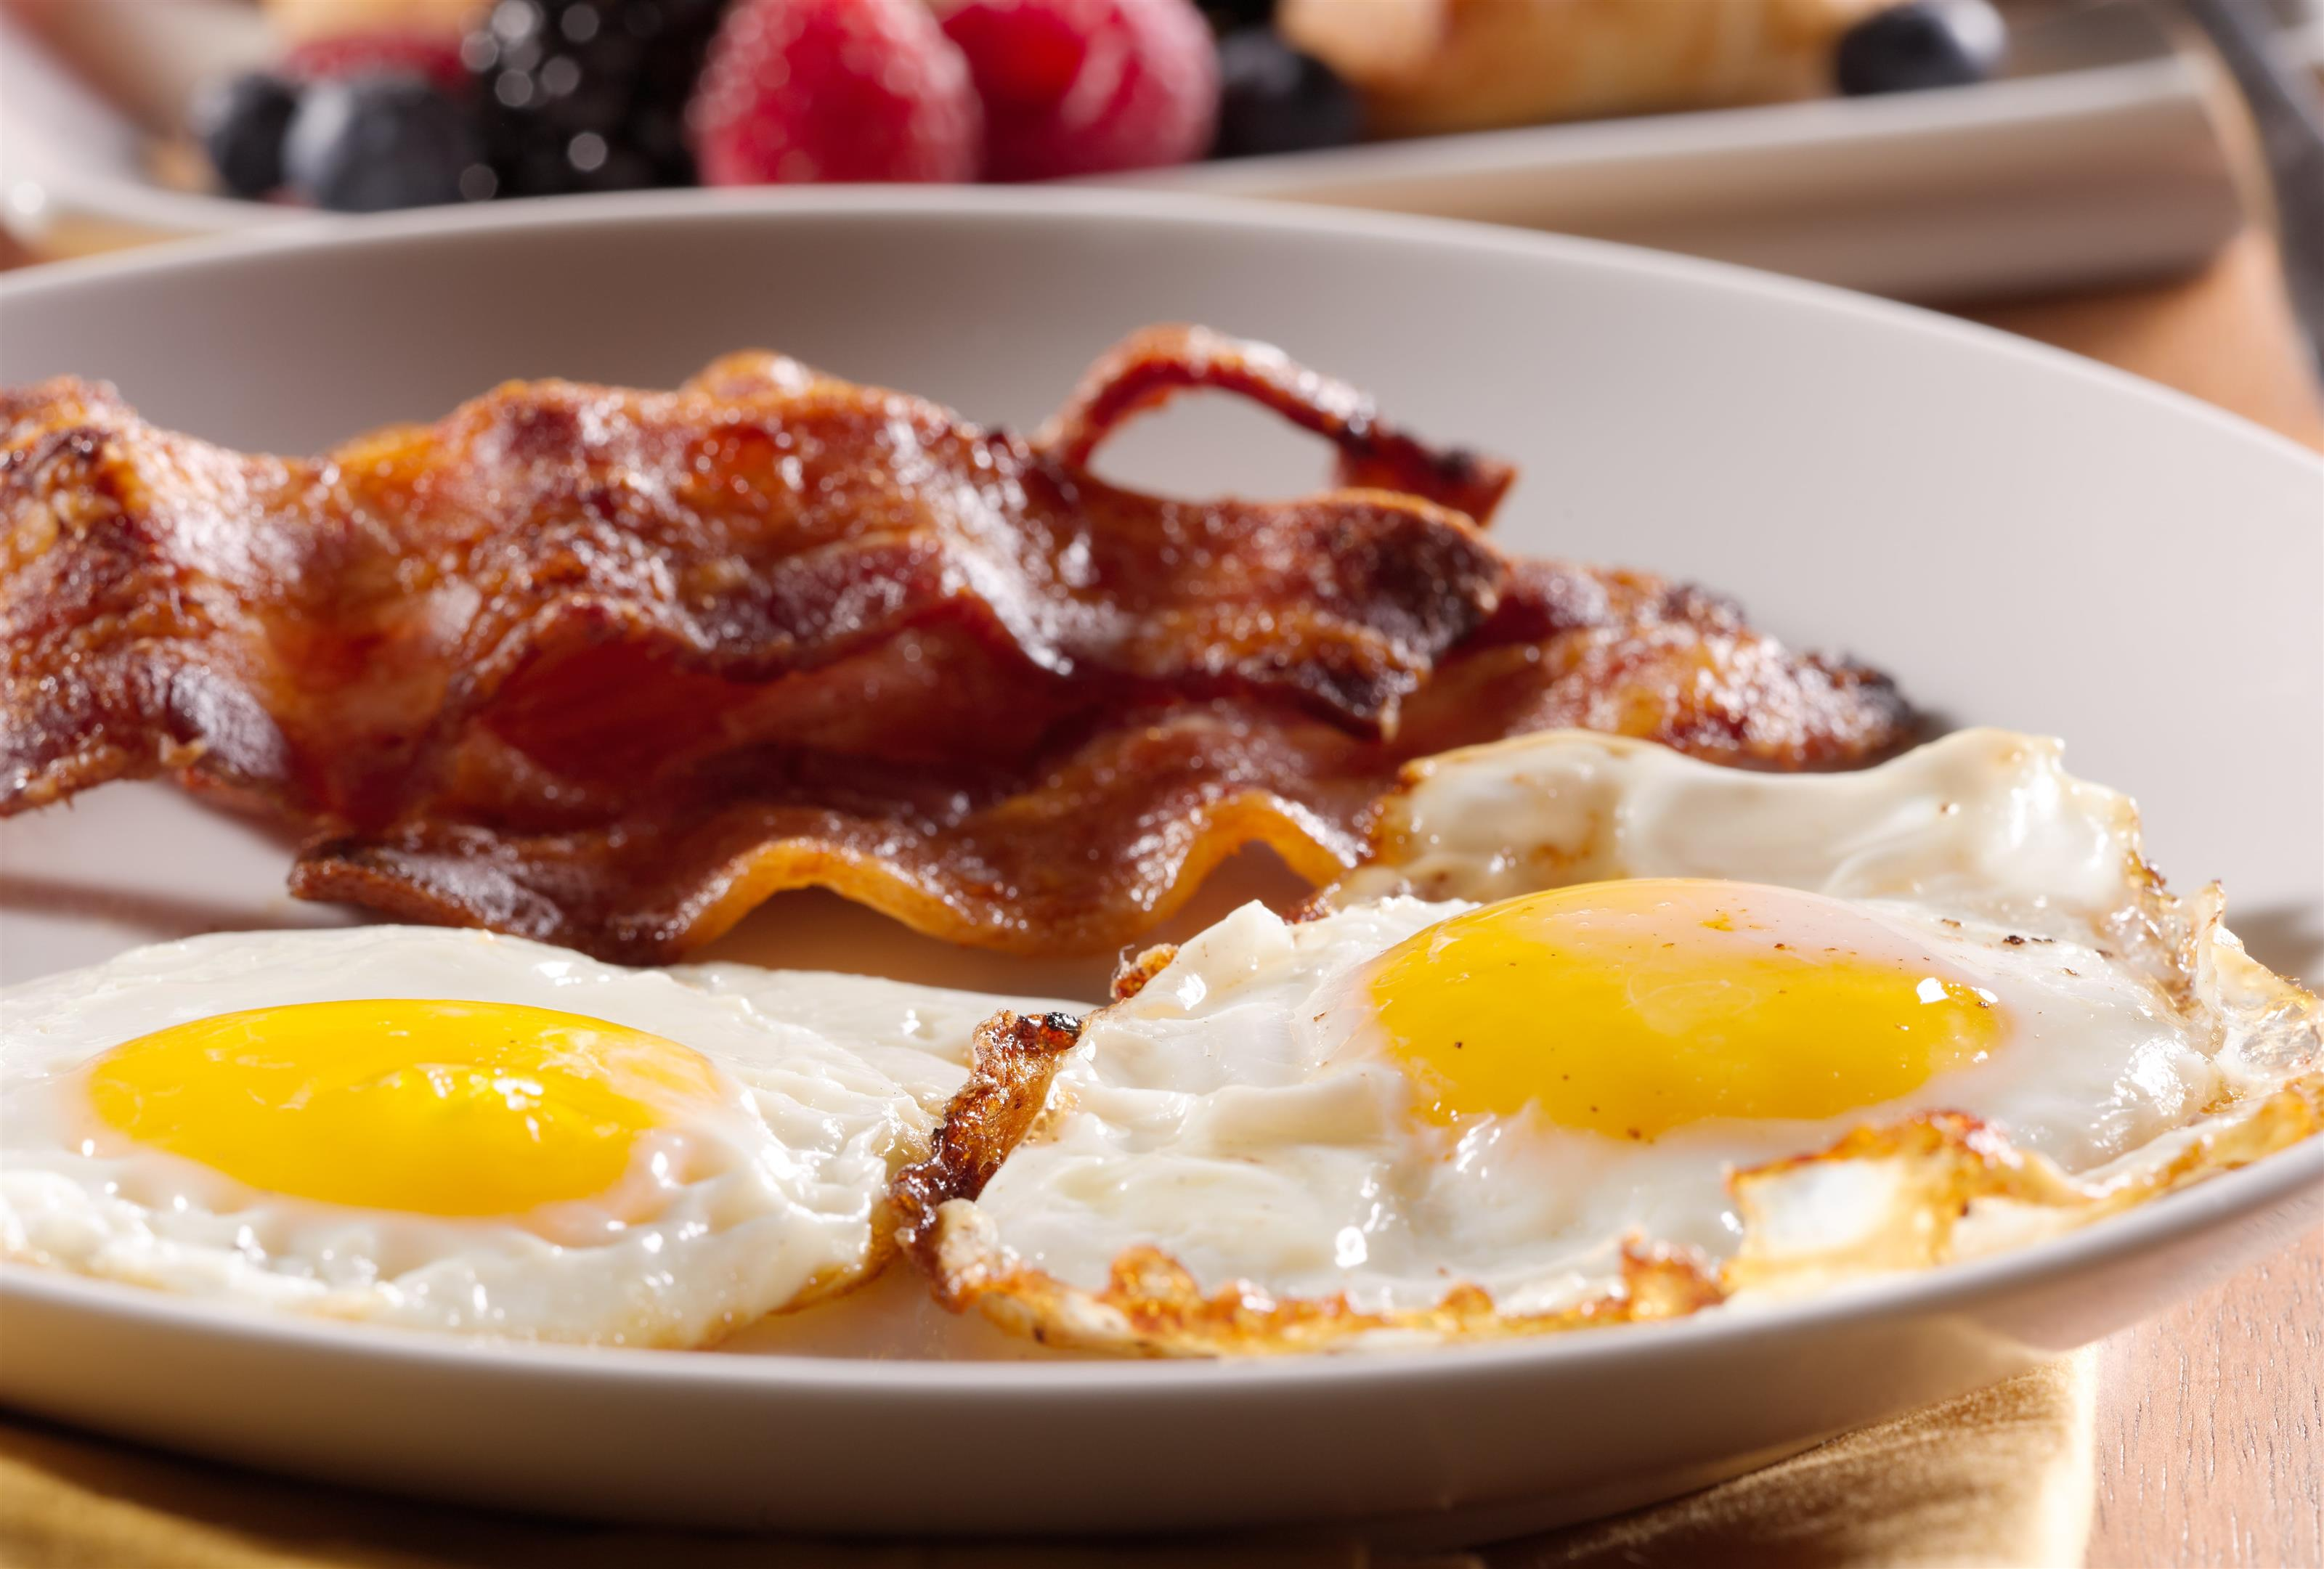 Two sunny side up eggs served with crispy bacon